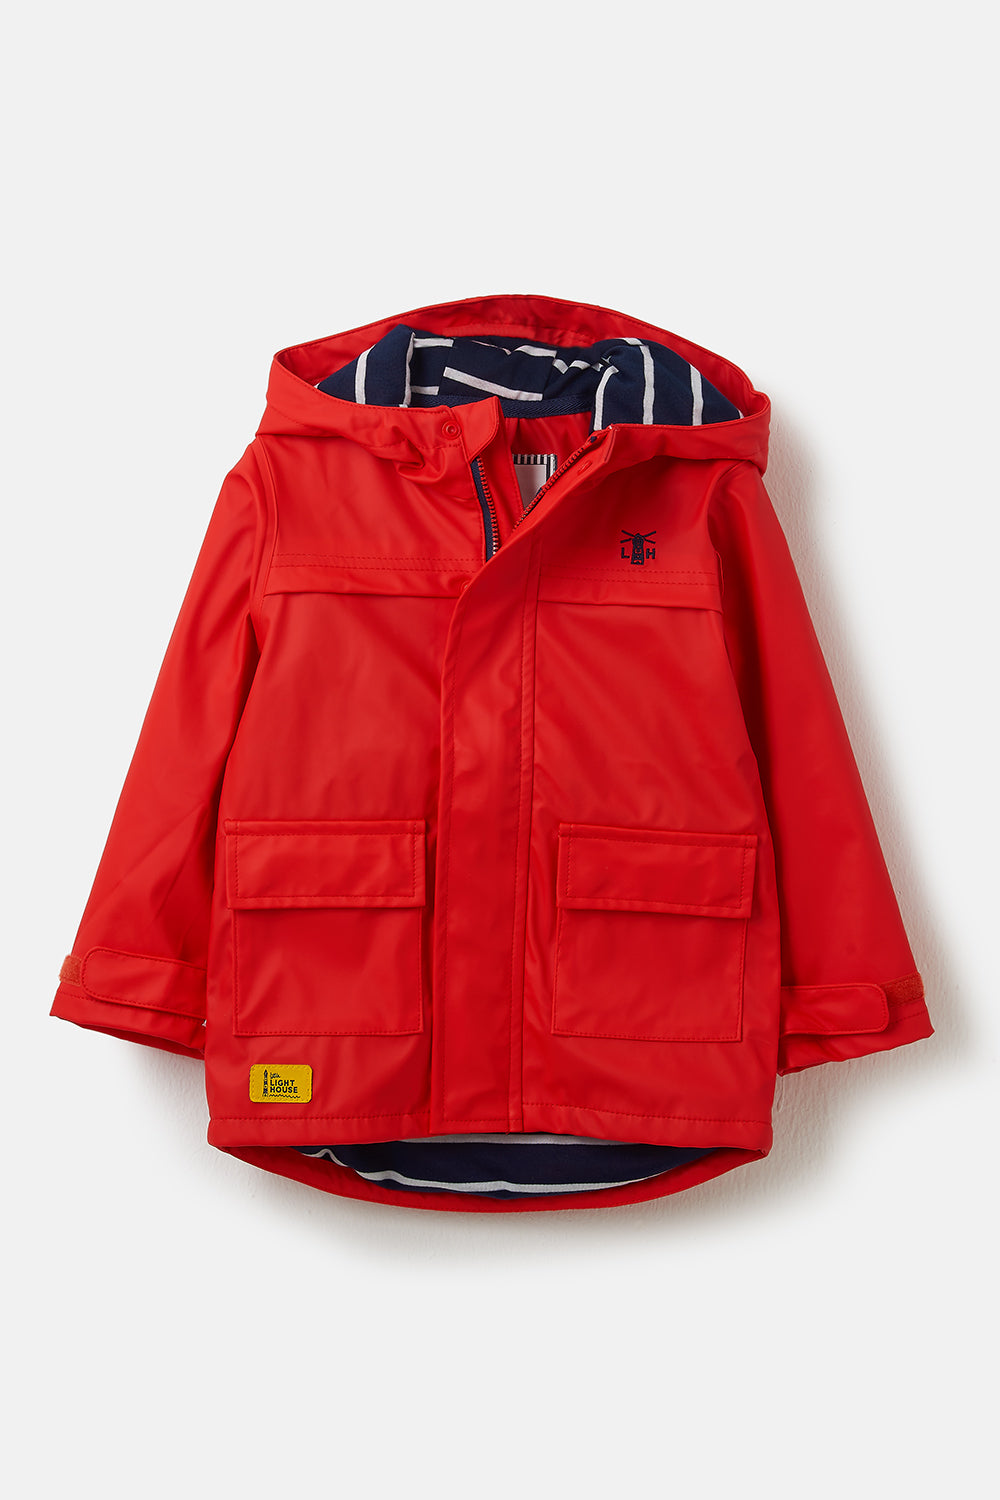 Anchor Jacket - Pillar Box